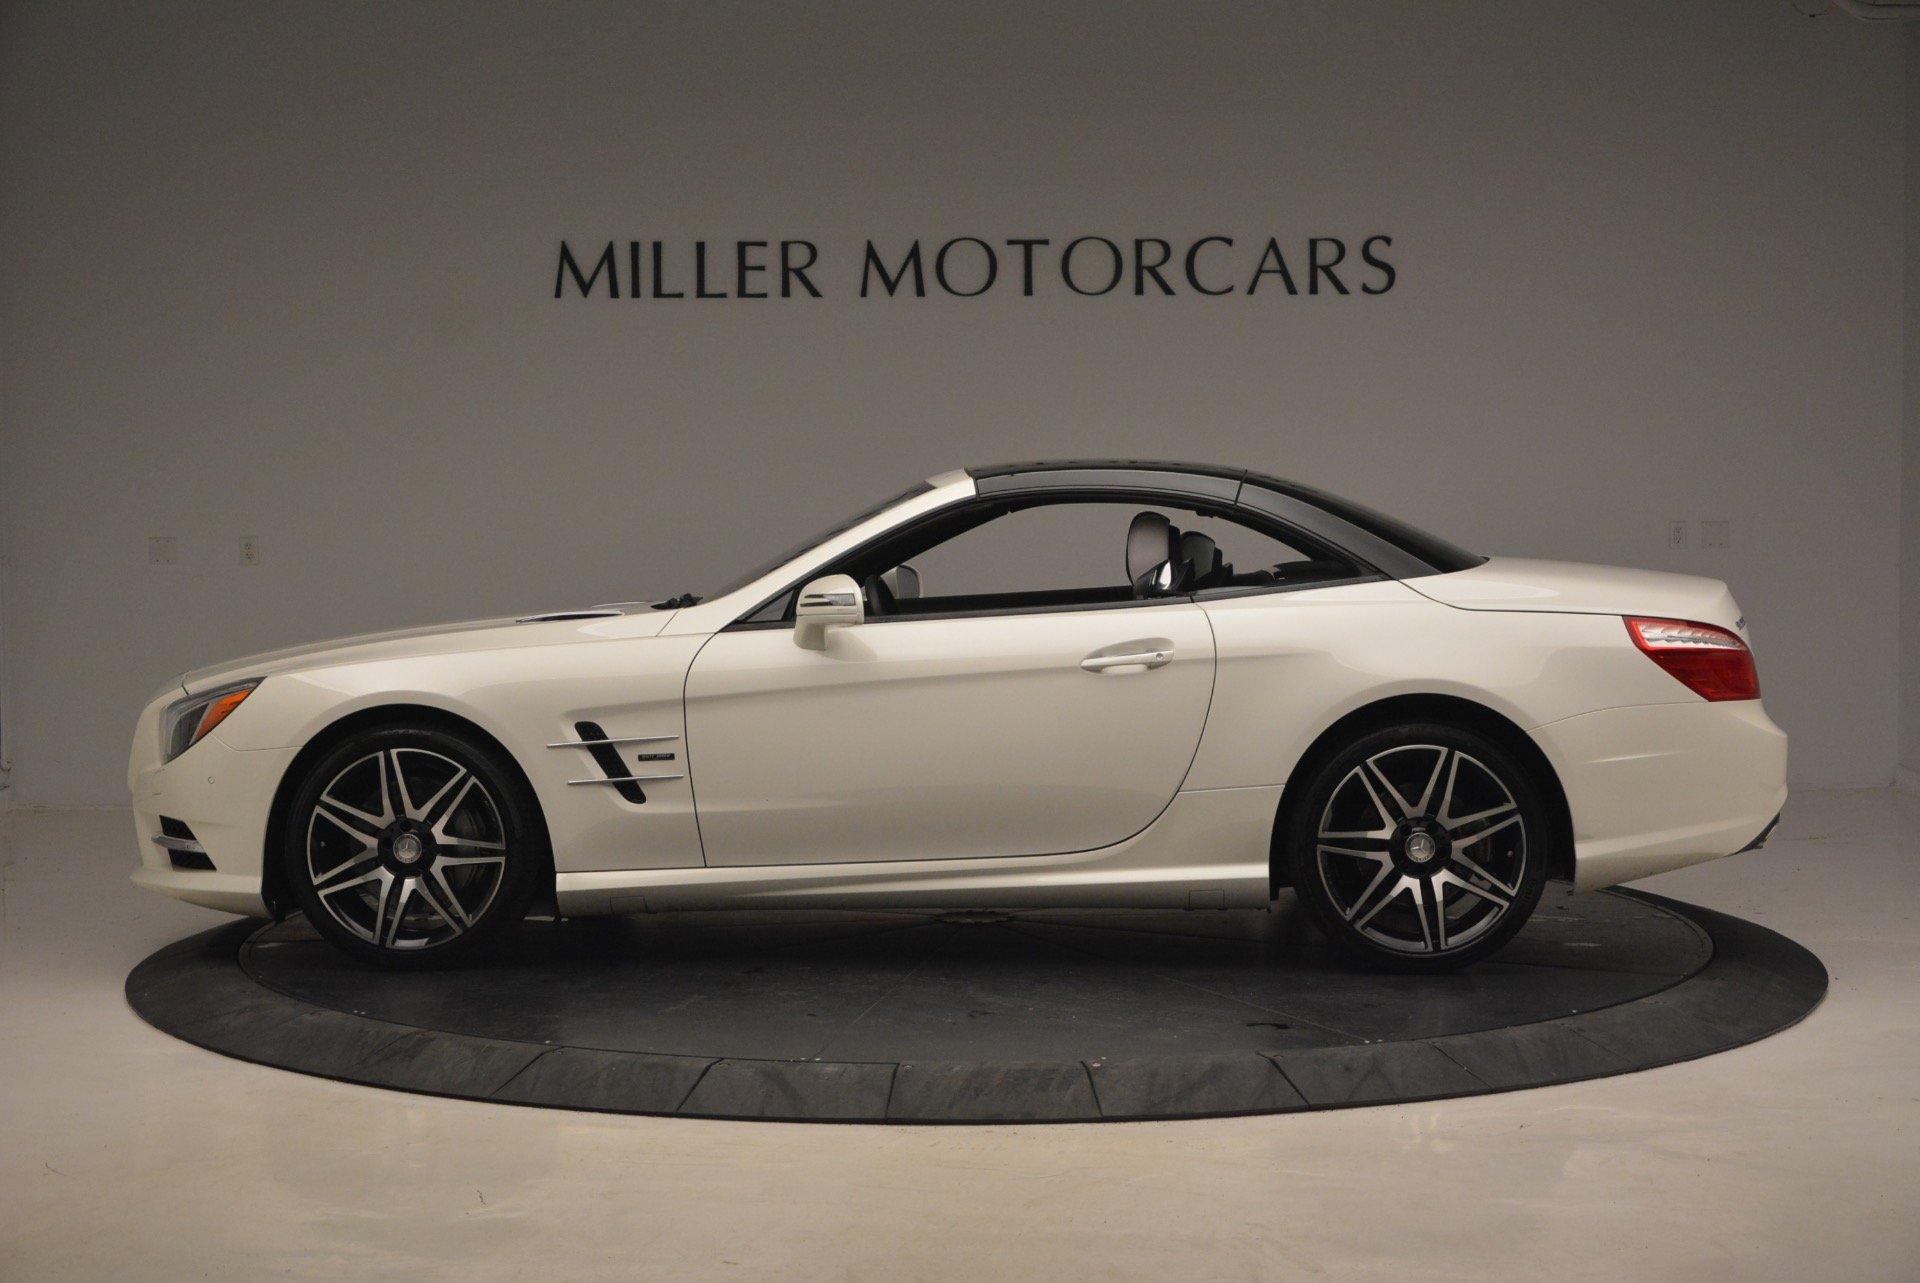 Used 2015 Mercedes Benz SL-Class SL 550 For Sale In Greenwich, CT 1261_p17